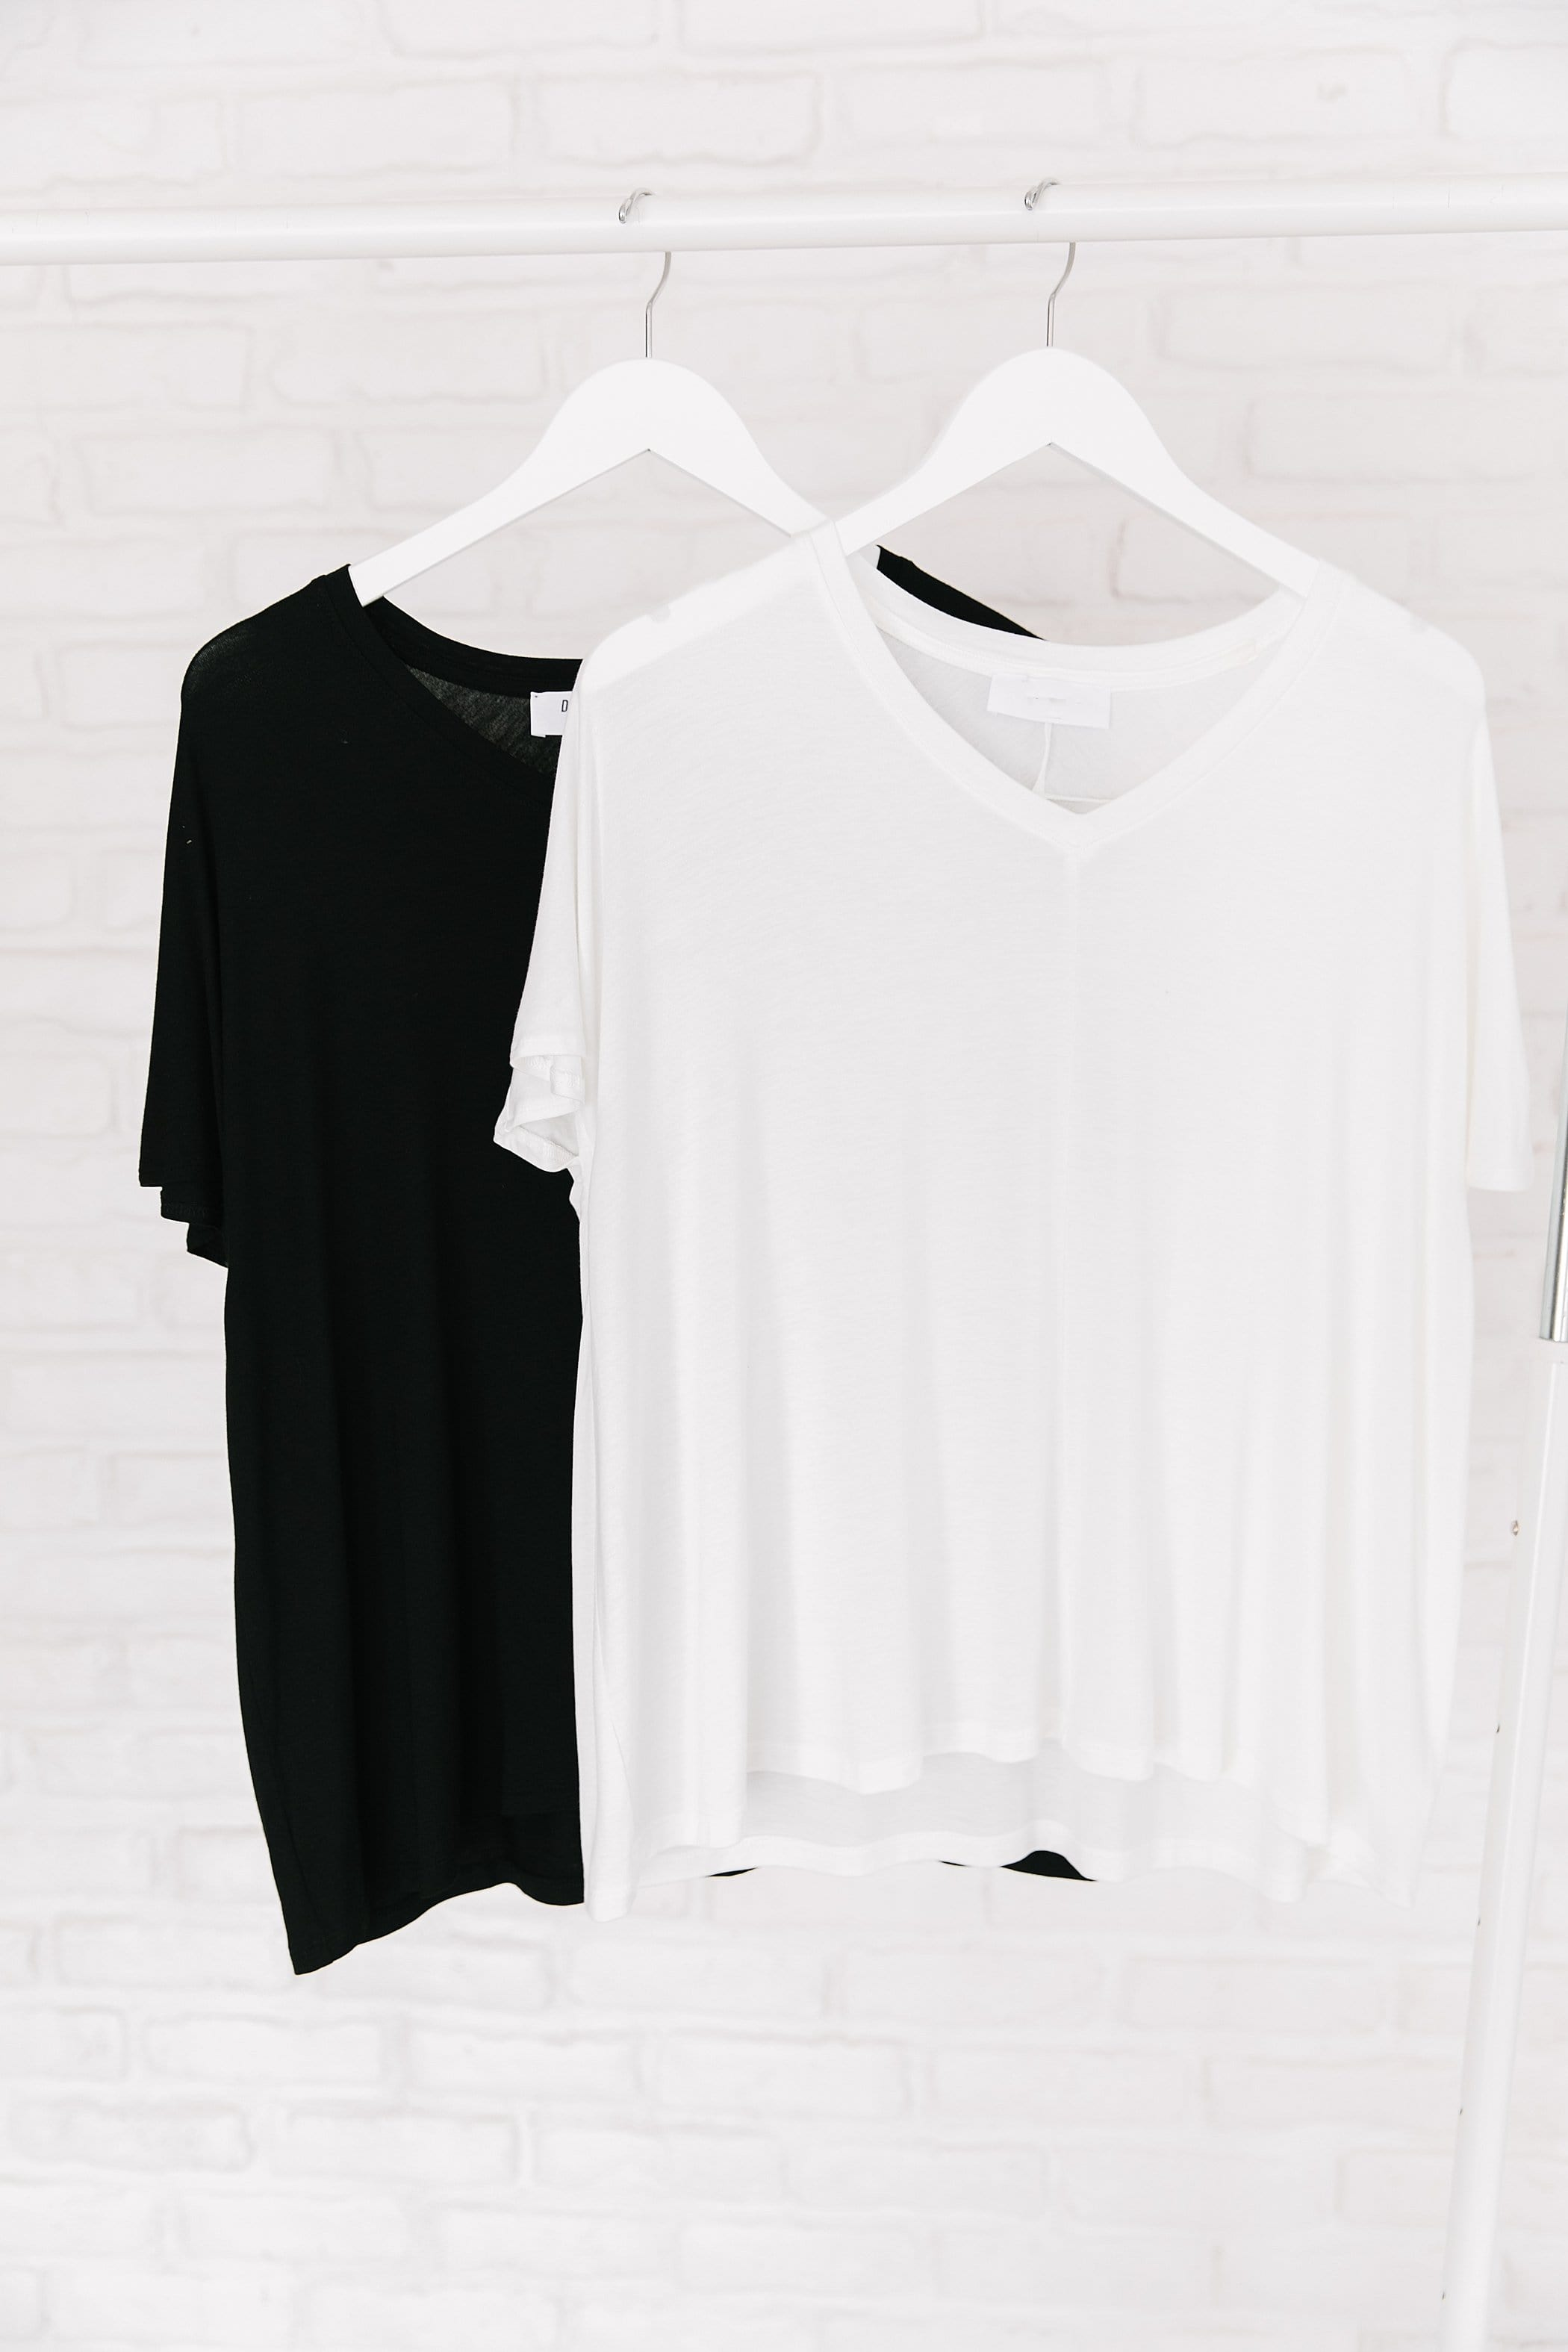 The Sula V Neck Top in Black and White